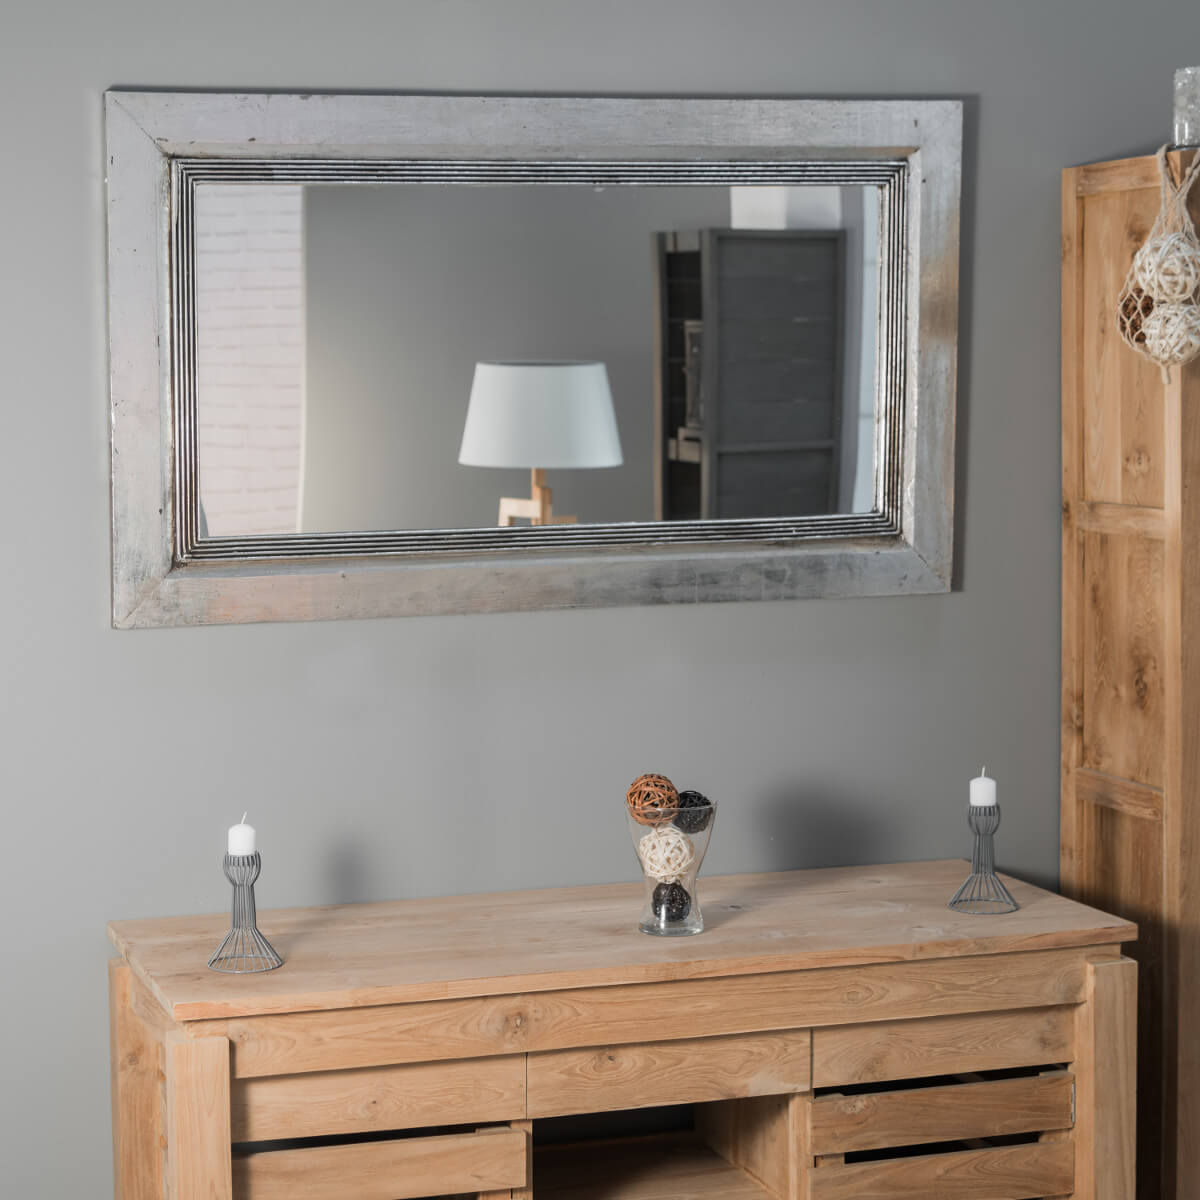 miroir venise en bois patin argent 140cm x 80cm. Black Bedroom Furniture Sets. Home Design Ideas